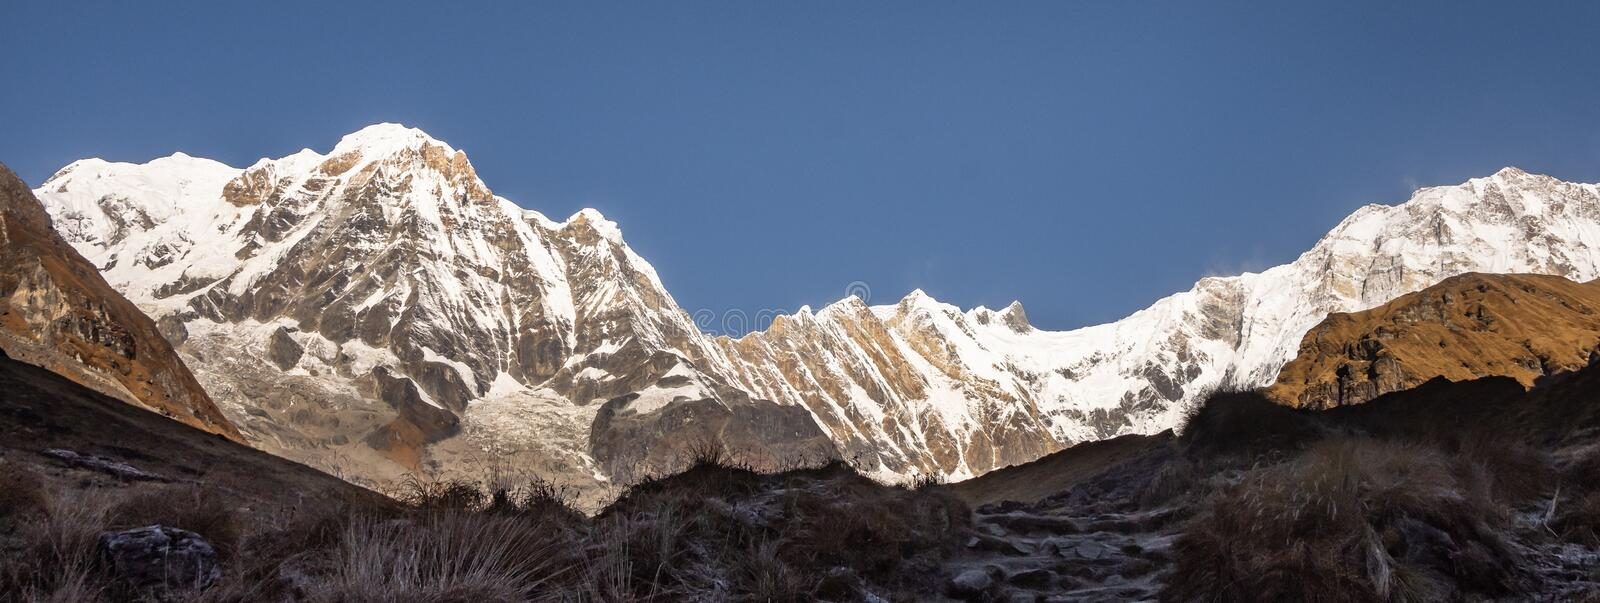 Panorama of Annapurna south and Annapurna 1 from Base Camp with clear blue sky, Himalayas royalty free stock photography